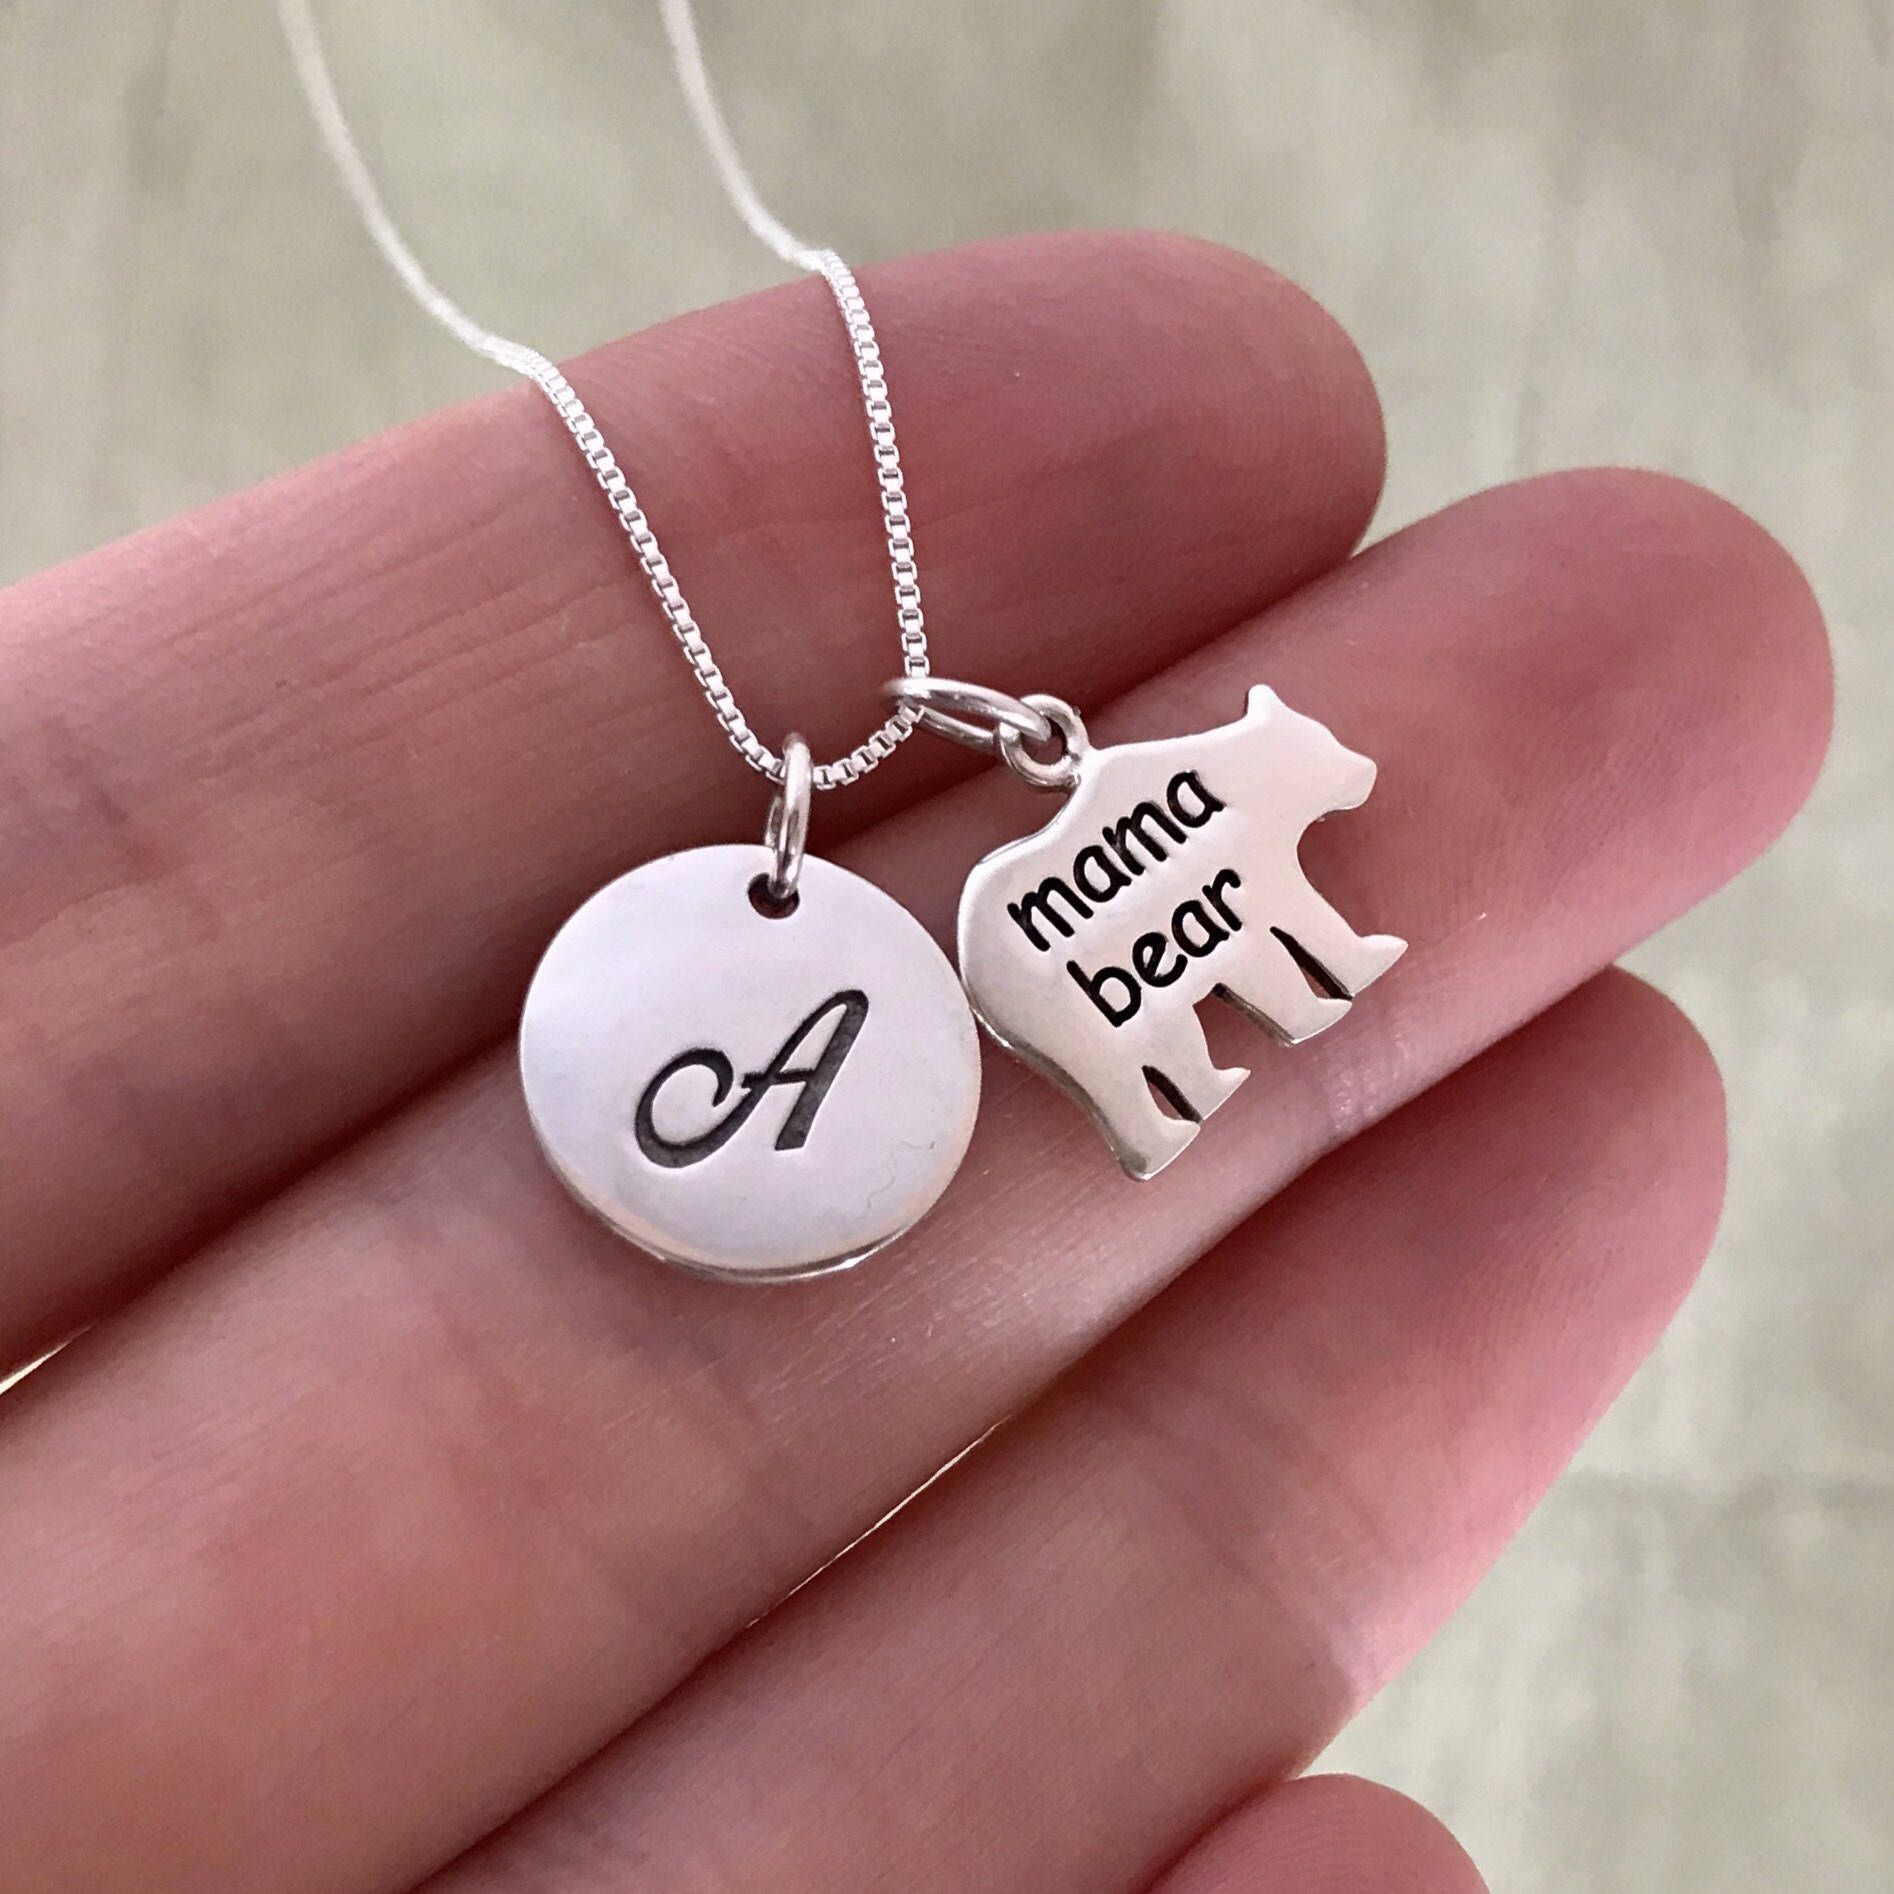 Mama bear necklace mothers day gift for wife new mom